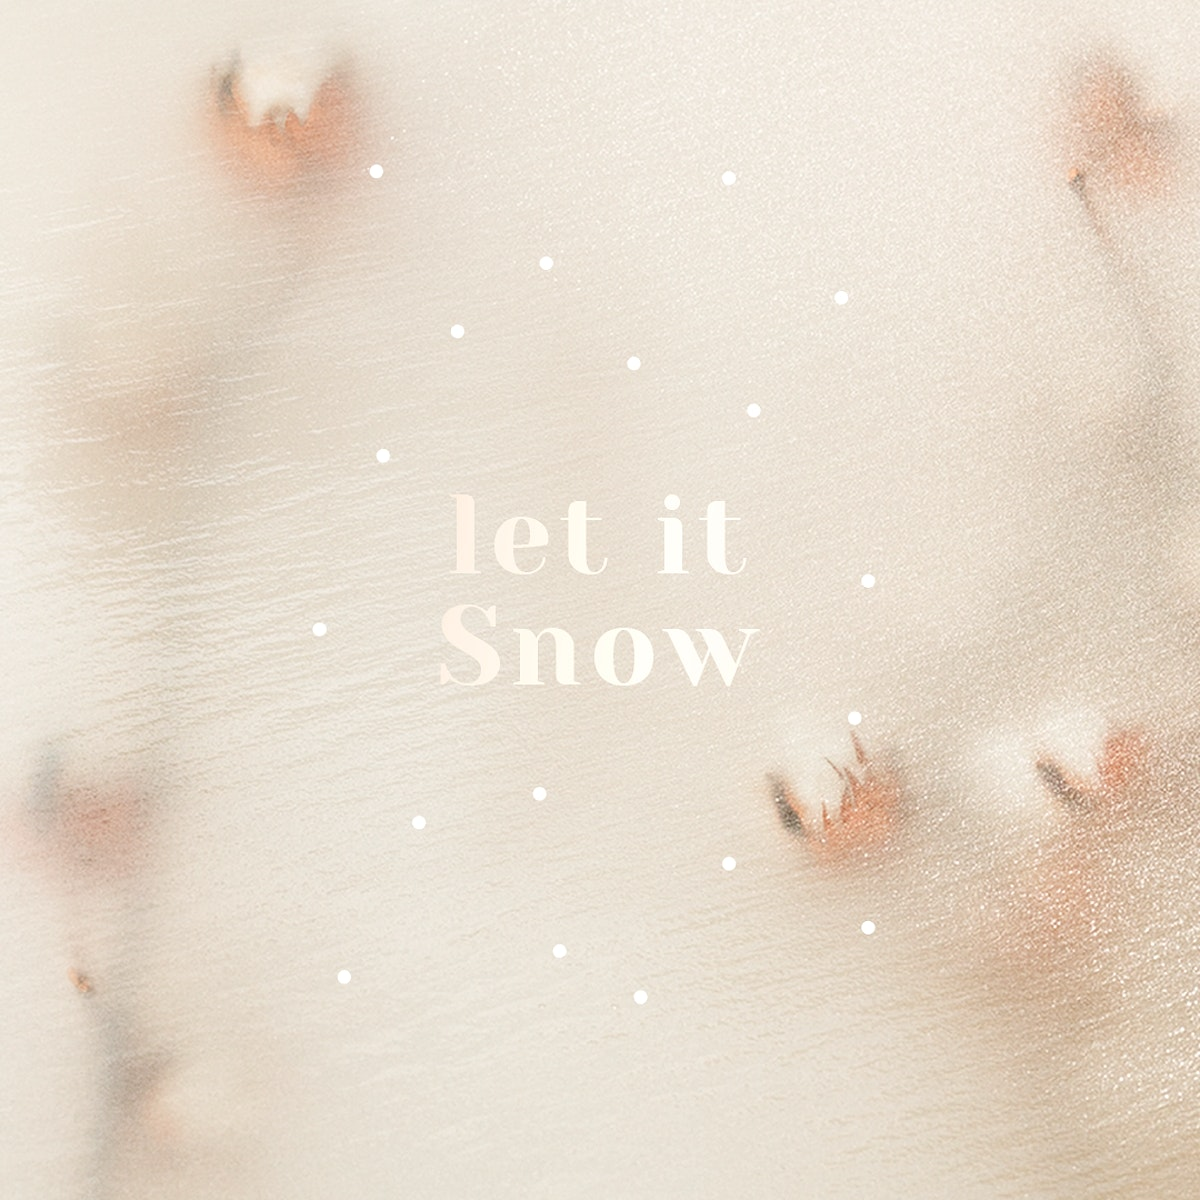 Let it snow psd blurry cotton decorated background